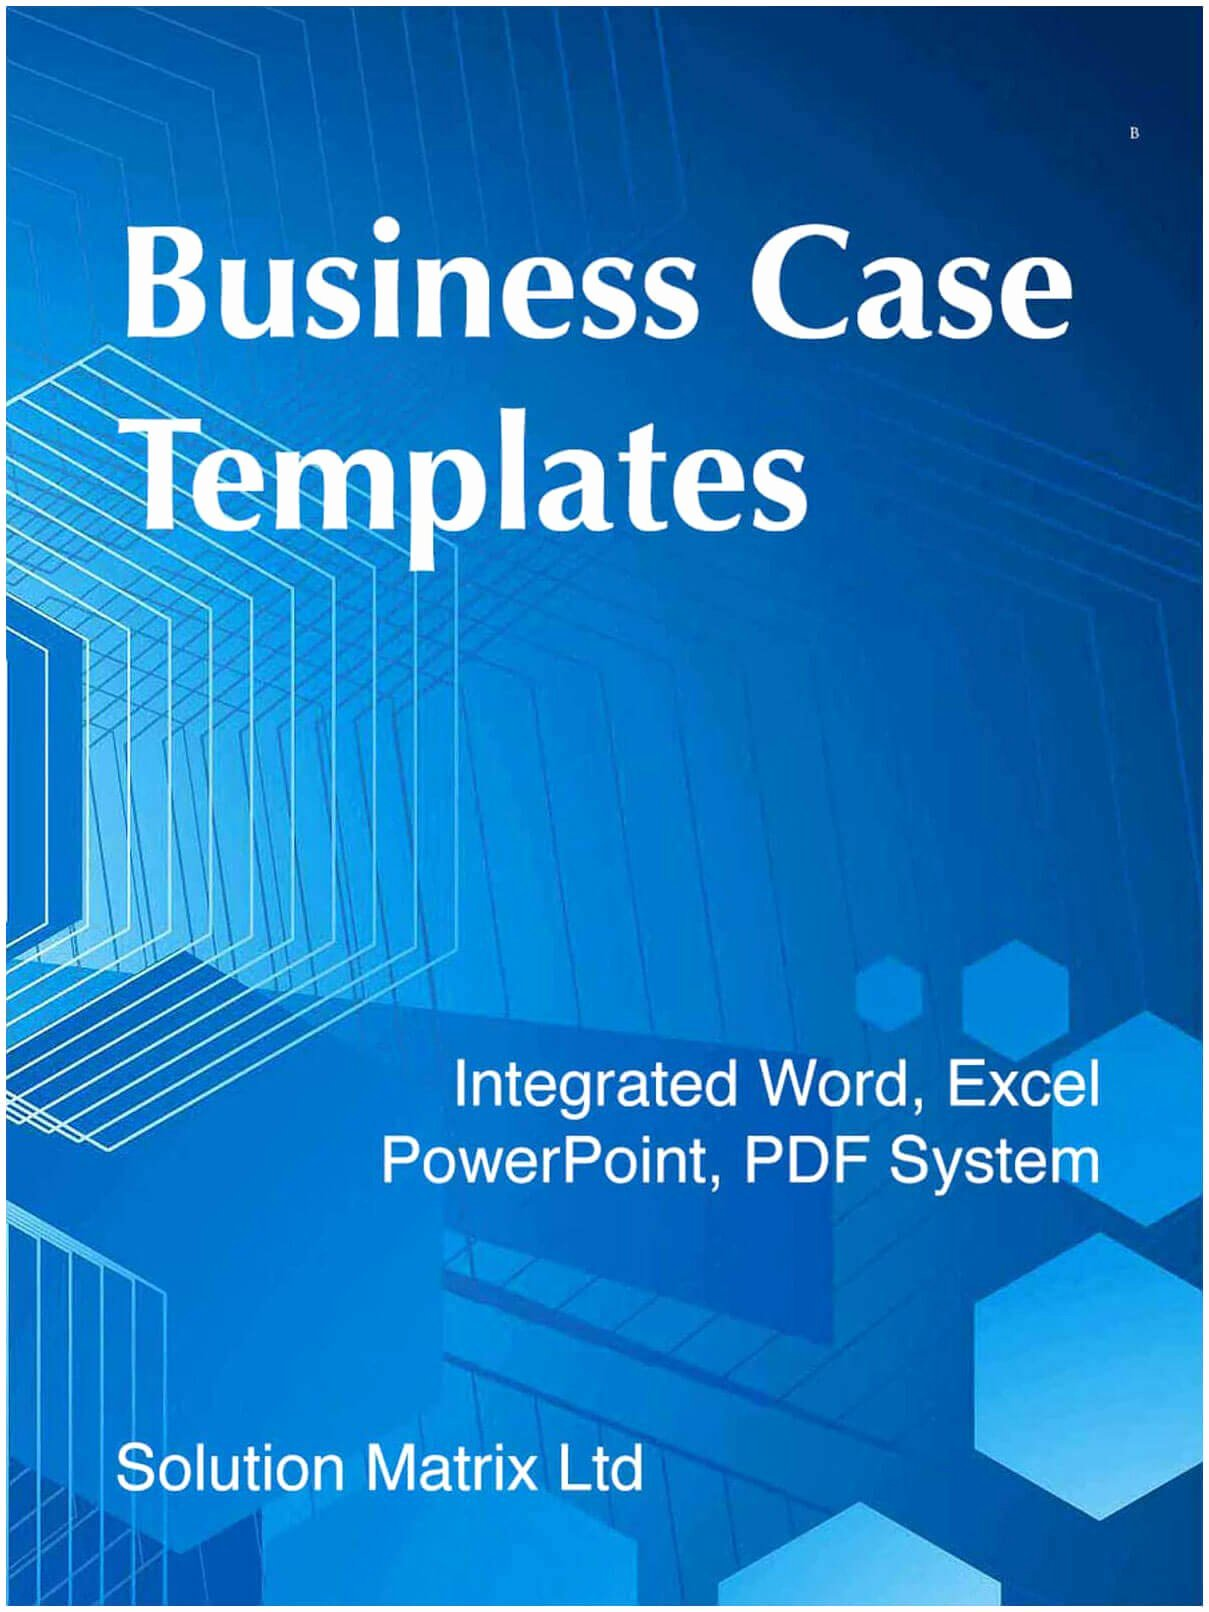 Business Case Example Pdf Inspirational Business Case Analysis Templates Integrated Word Excel Pp System